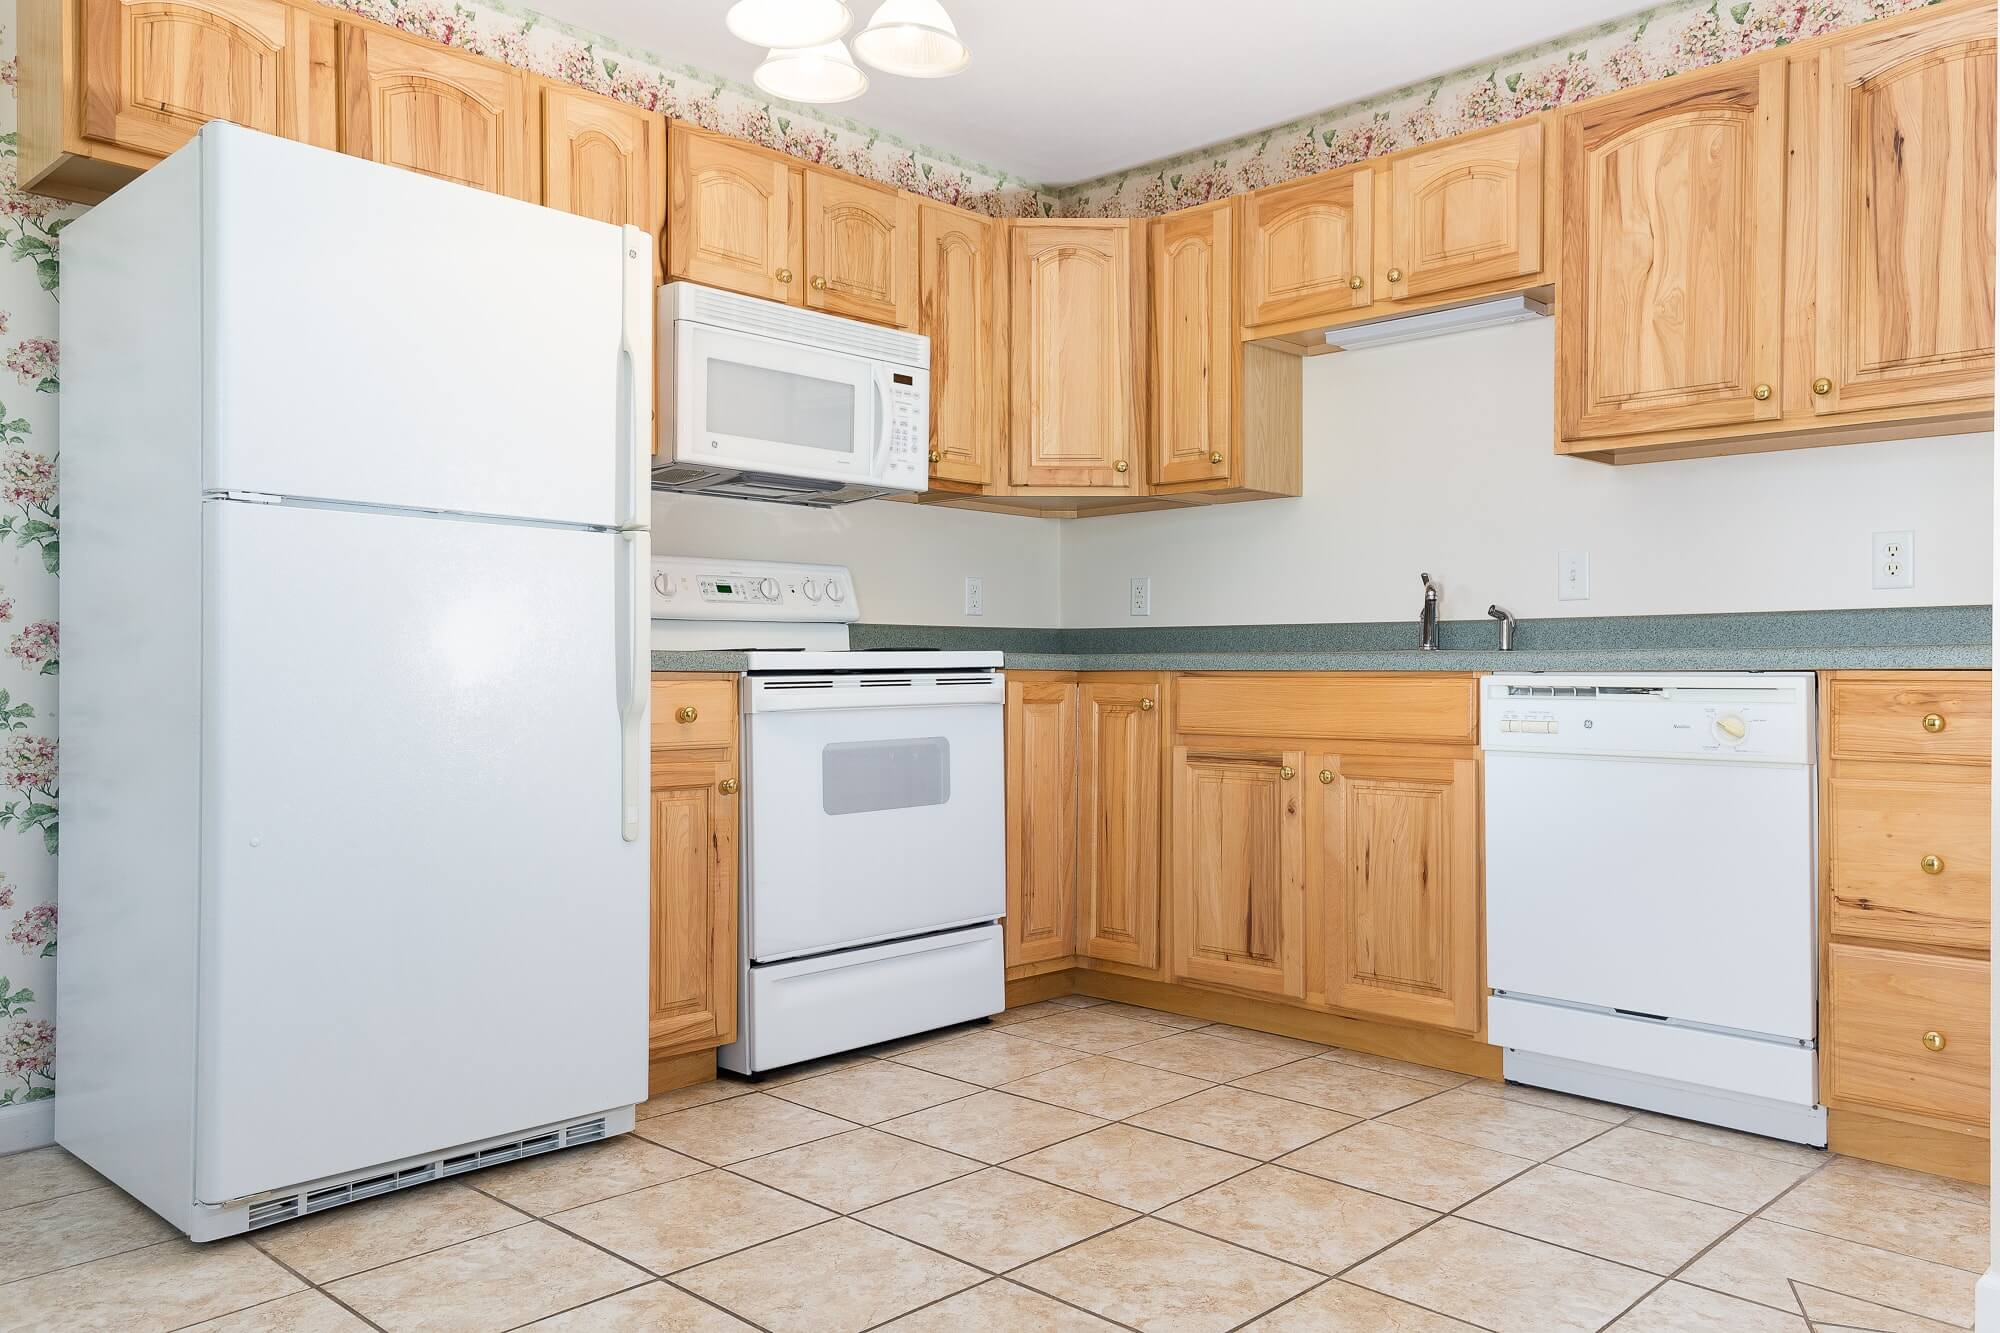 The Carnation - 2 Bed | 1 Bath | 980 - 1054 SF$850 - $930 Per Month